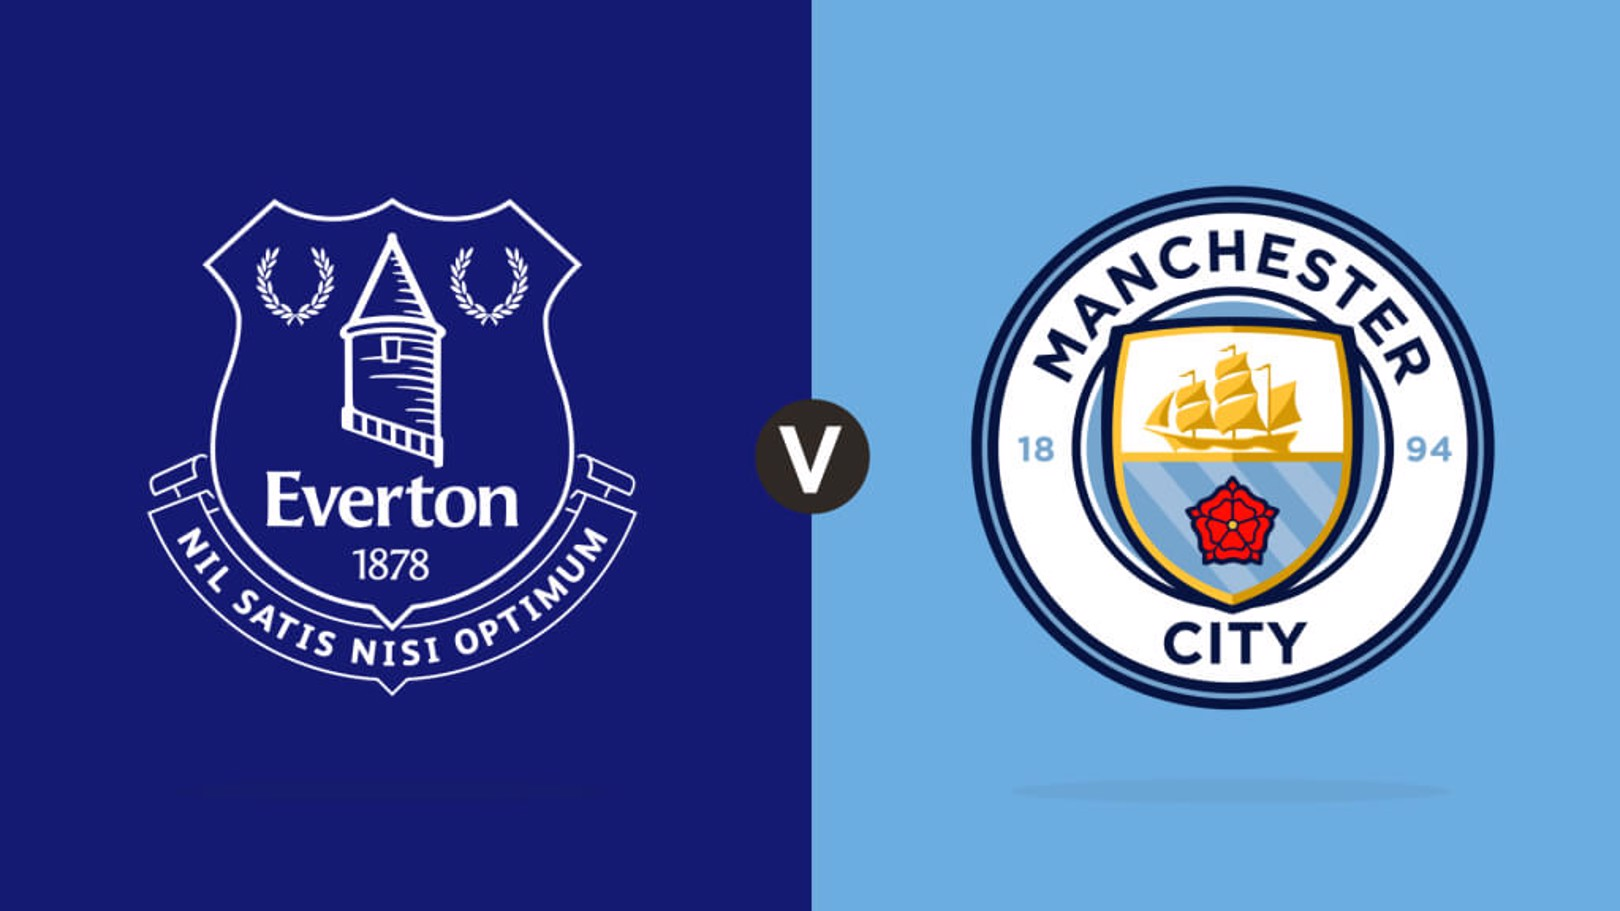 Everton v City match day live